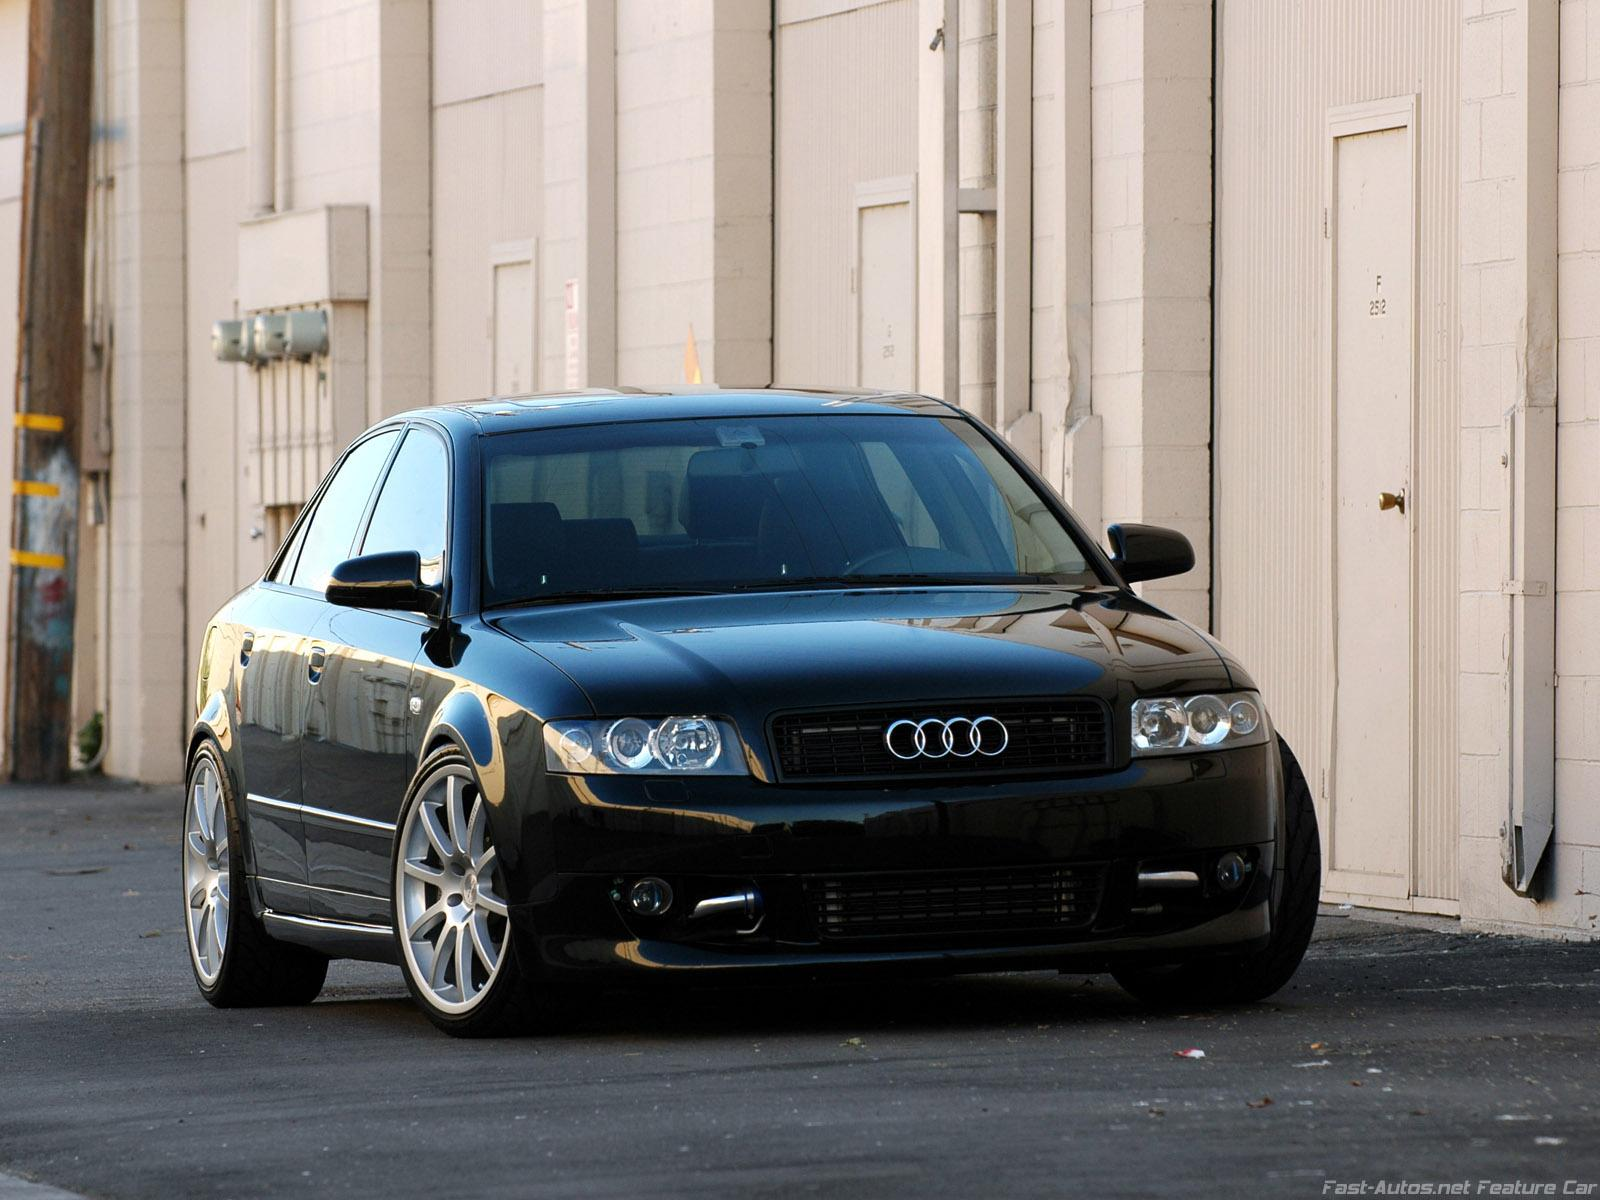 Sportec Audi A4 1 8t Photos Photogallery With 3 Pics Carsbase Com